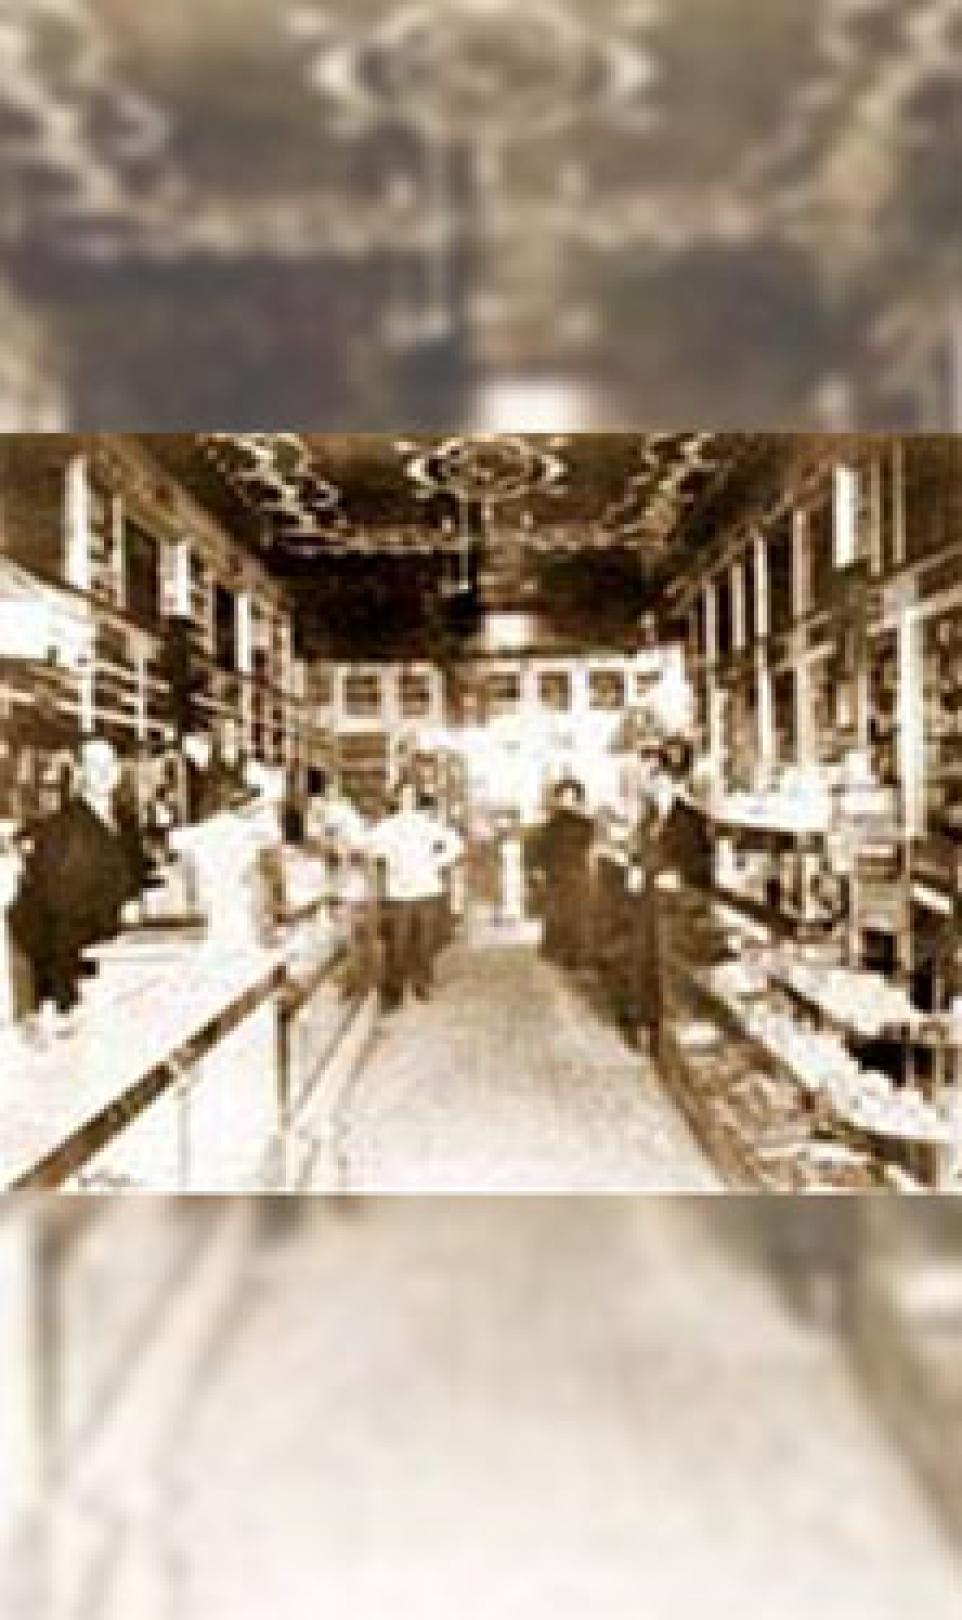 Photo of the inside of the second drugstore belonging to Walgreen Co.